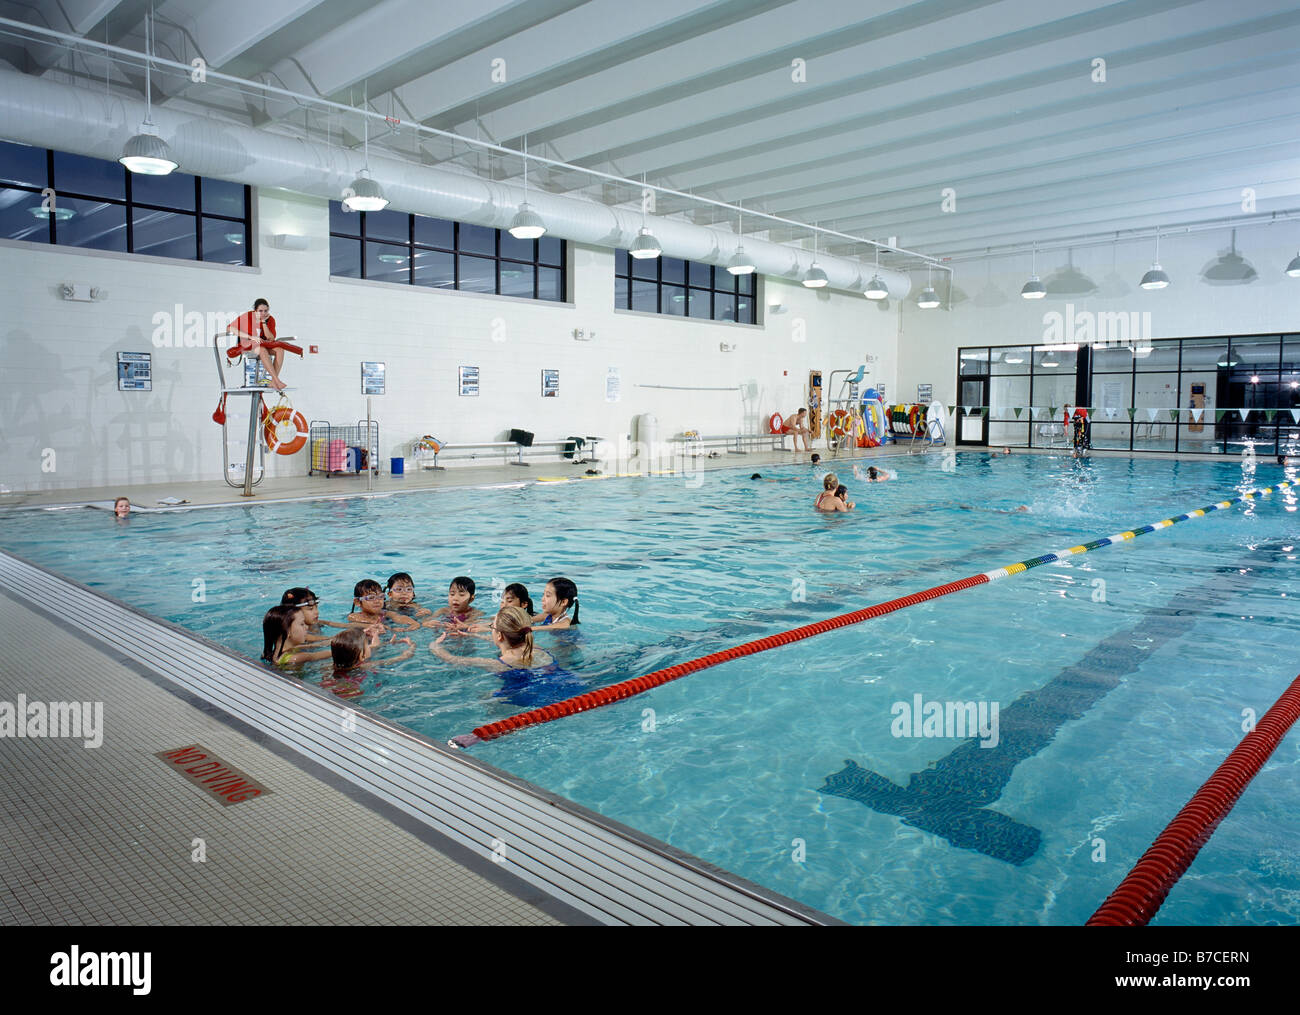 Children Instructor At Swimming Lessons Ymca Pool Lexington Stock Photo Royalty Free Image